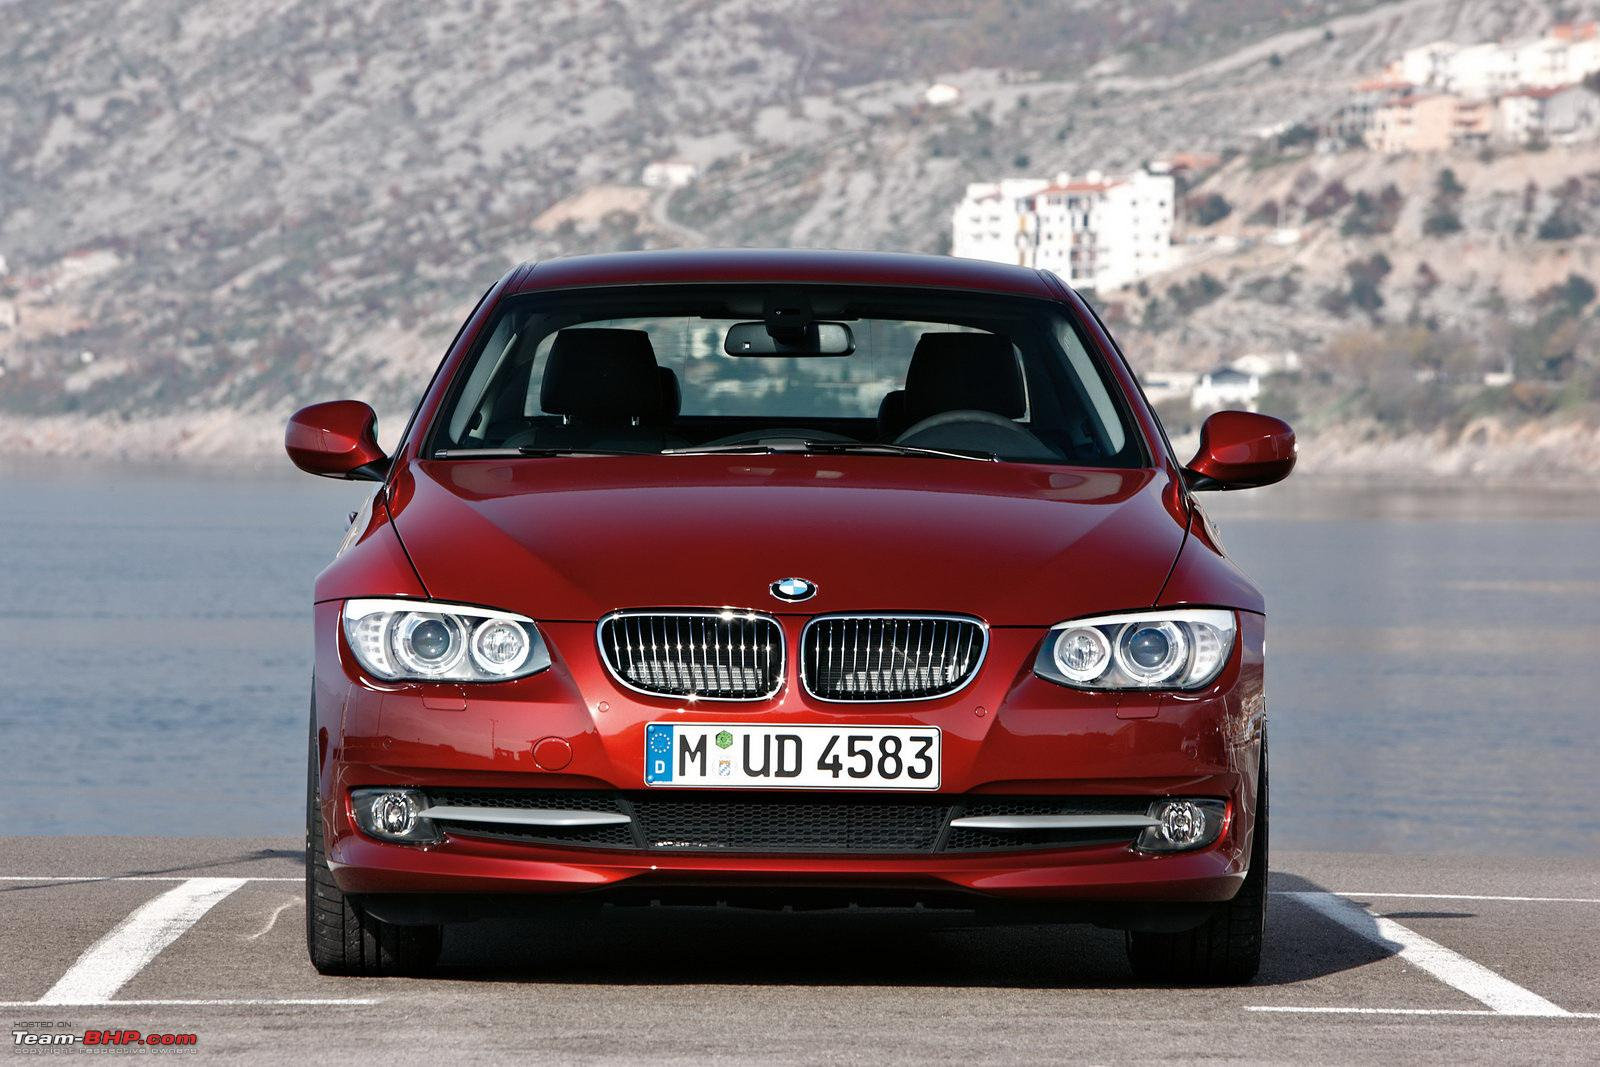 BMW Series Price In India Price List Of BMW - Bmw 3 series 2011 price